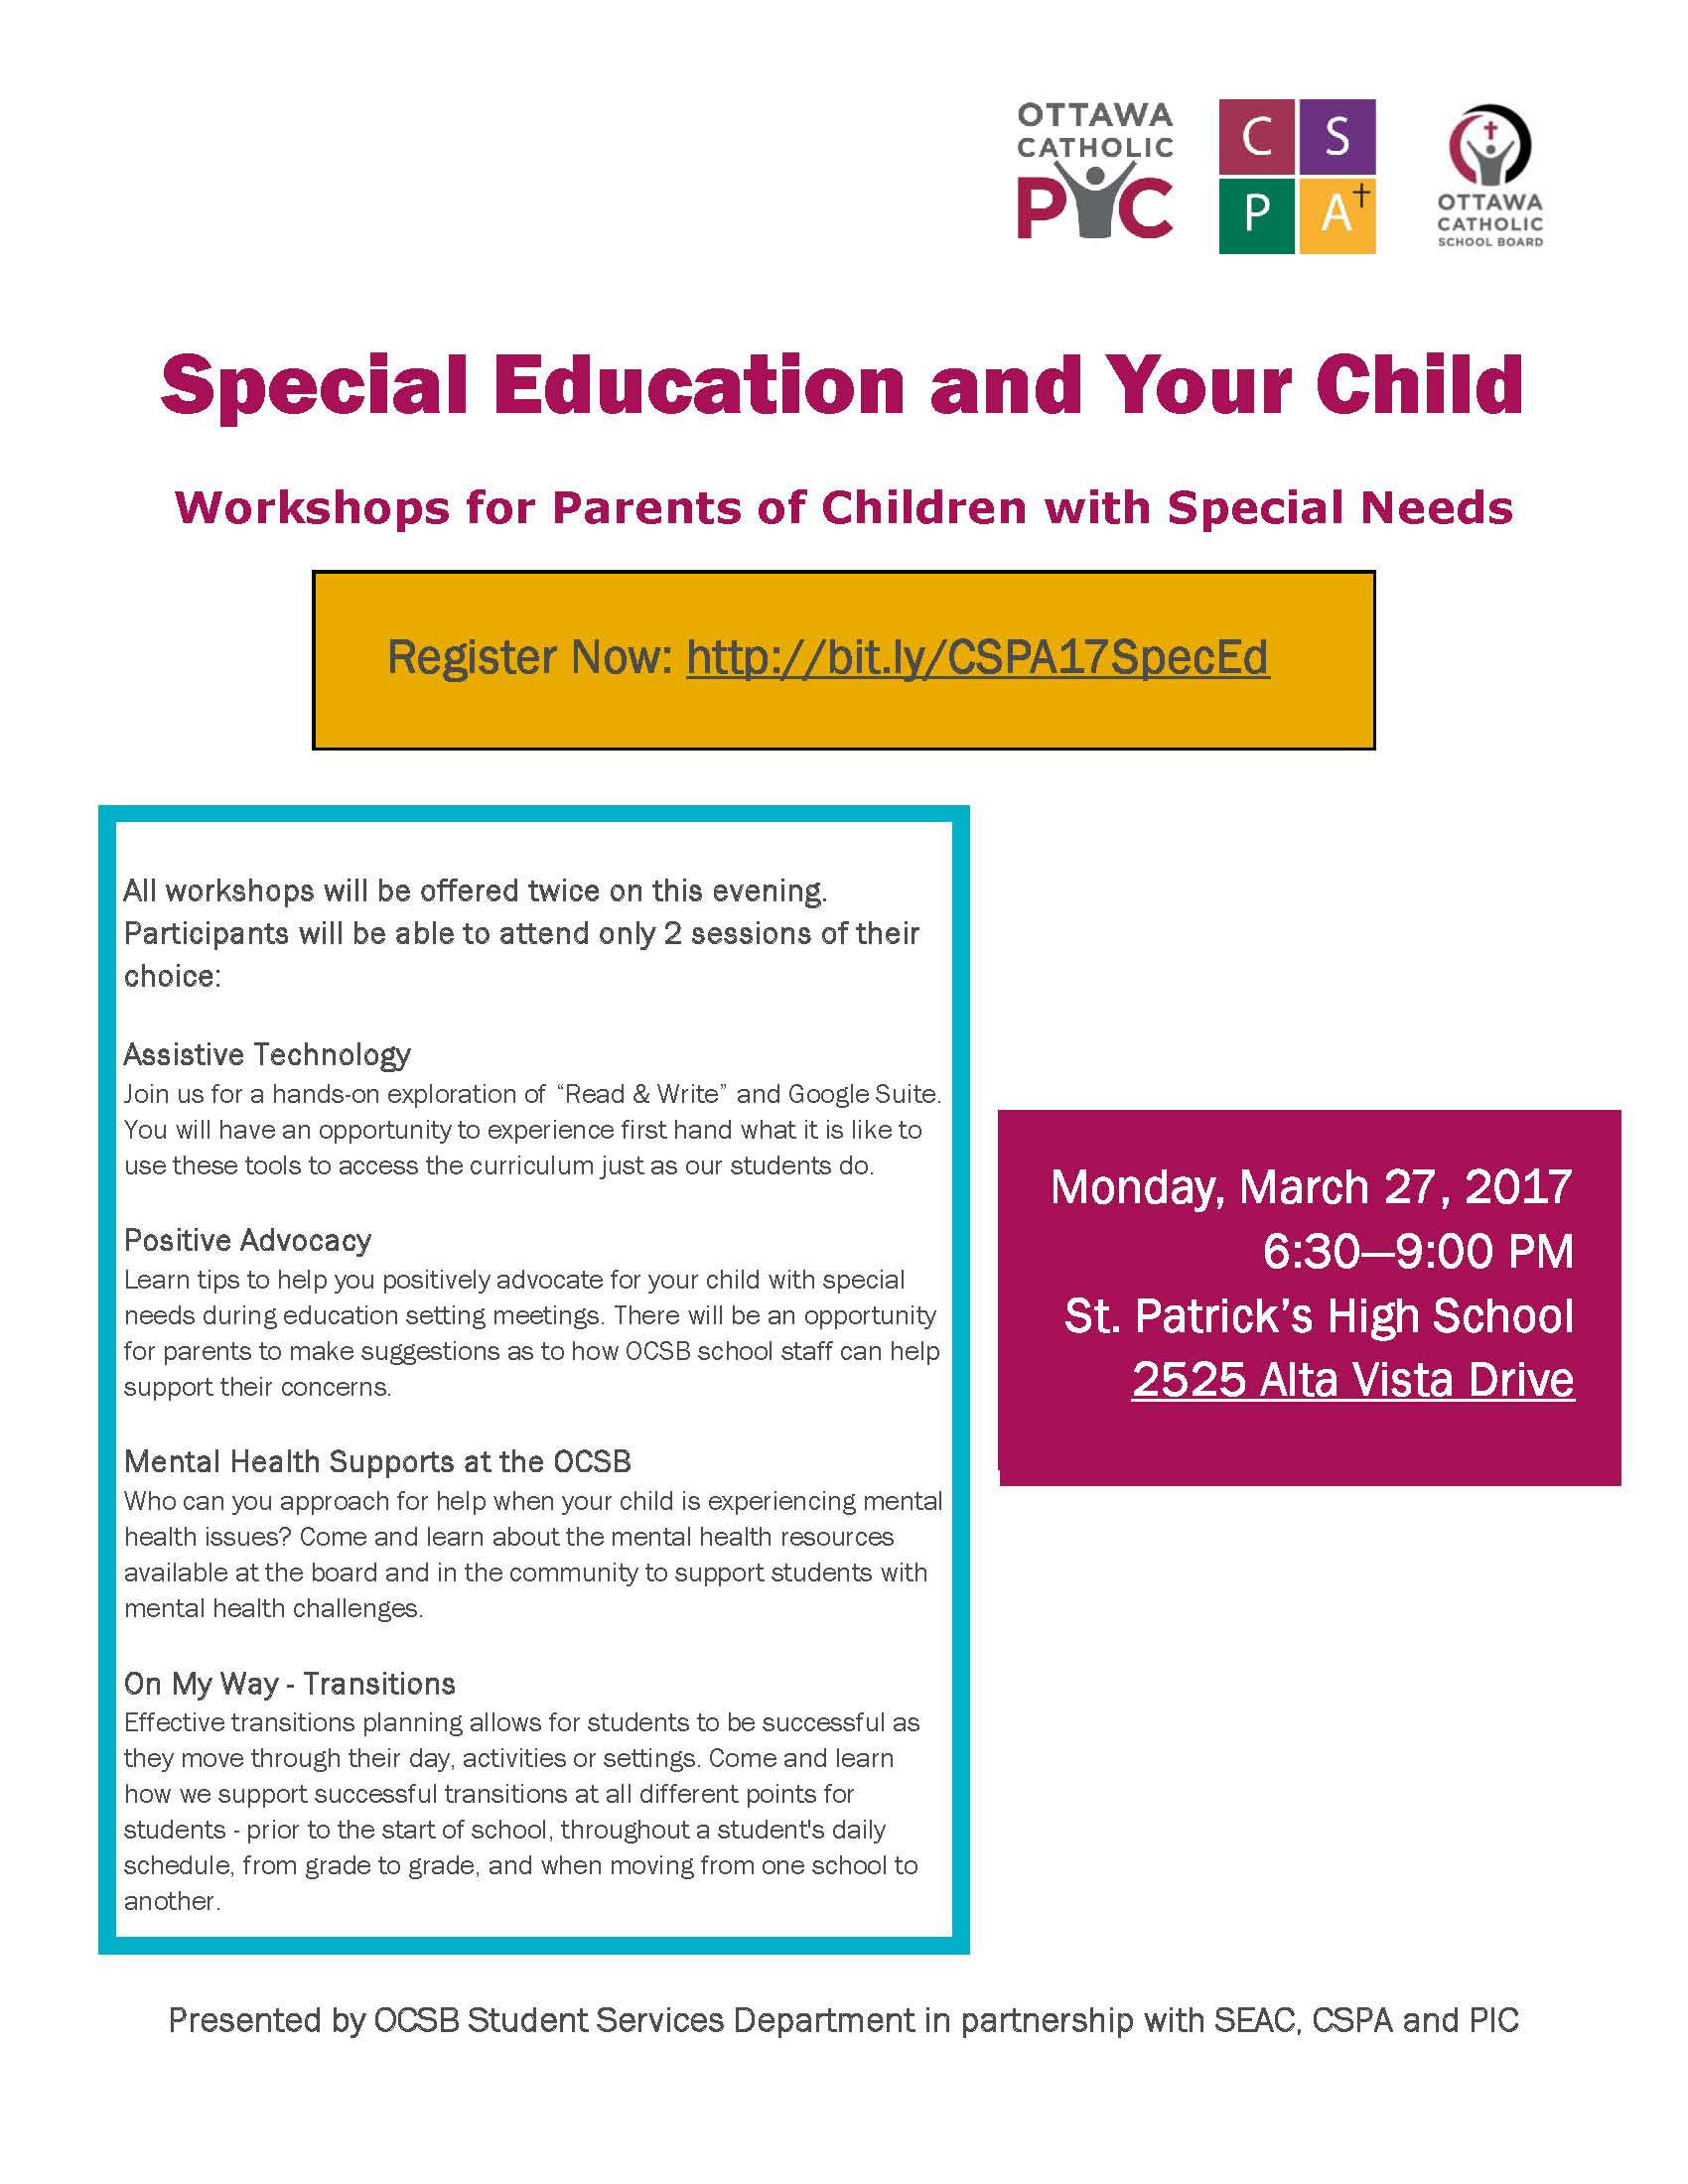 Special Education March 2017